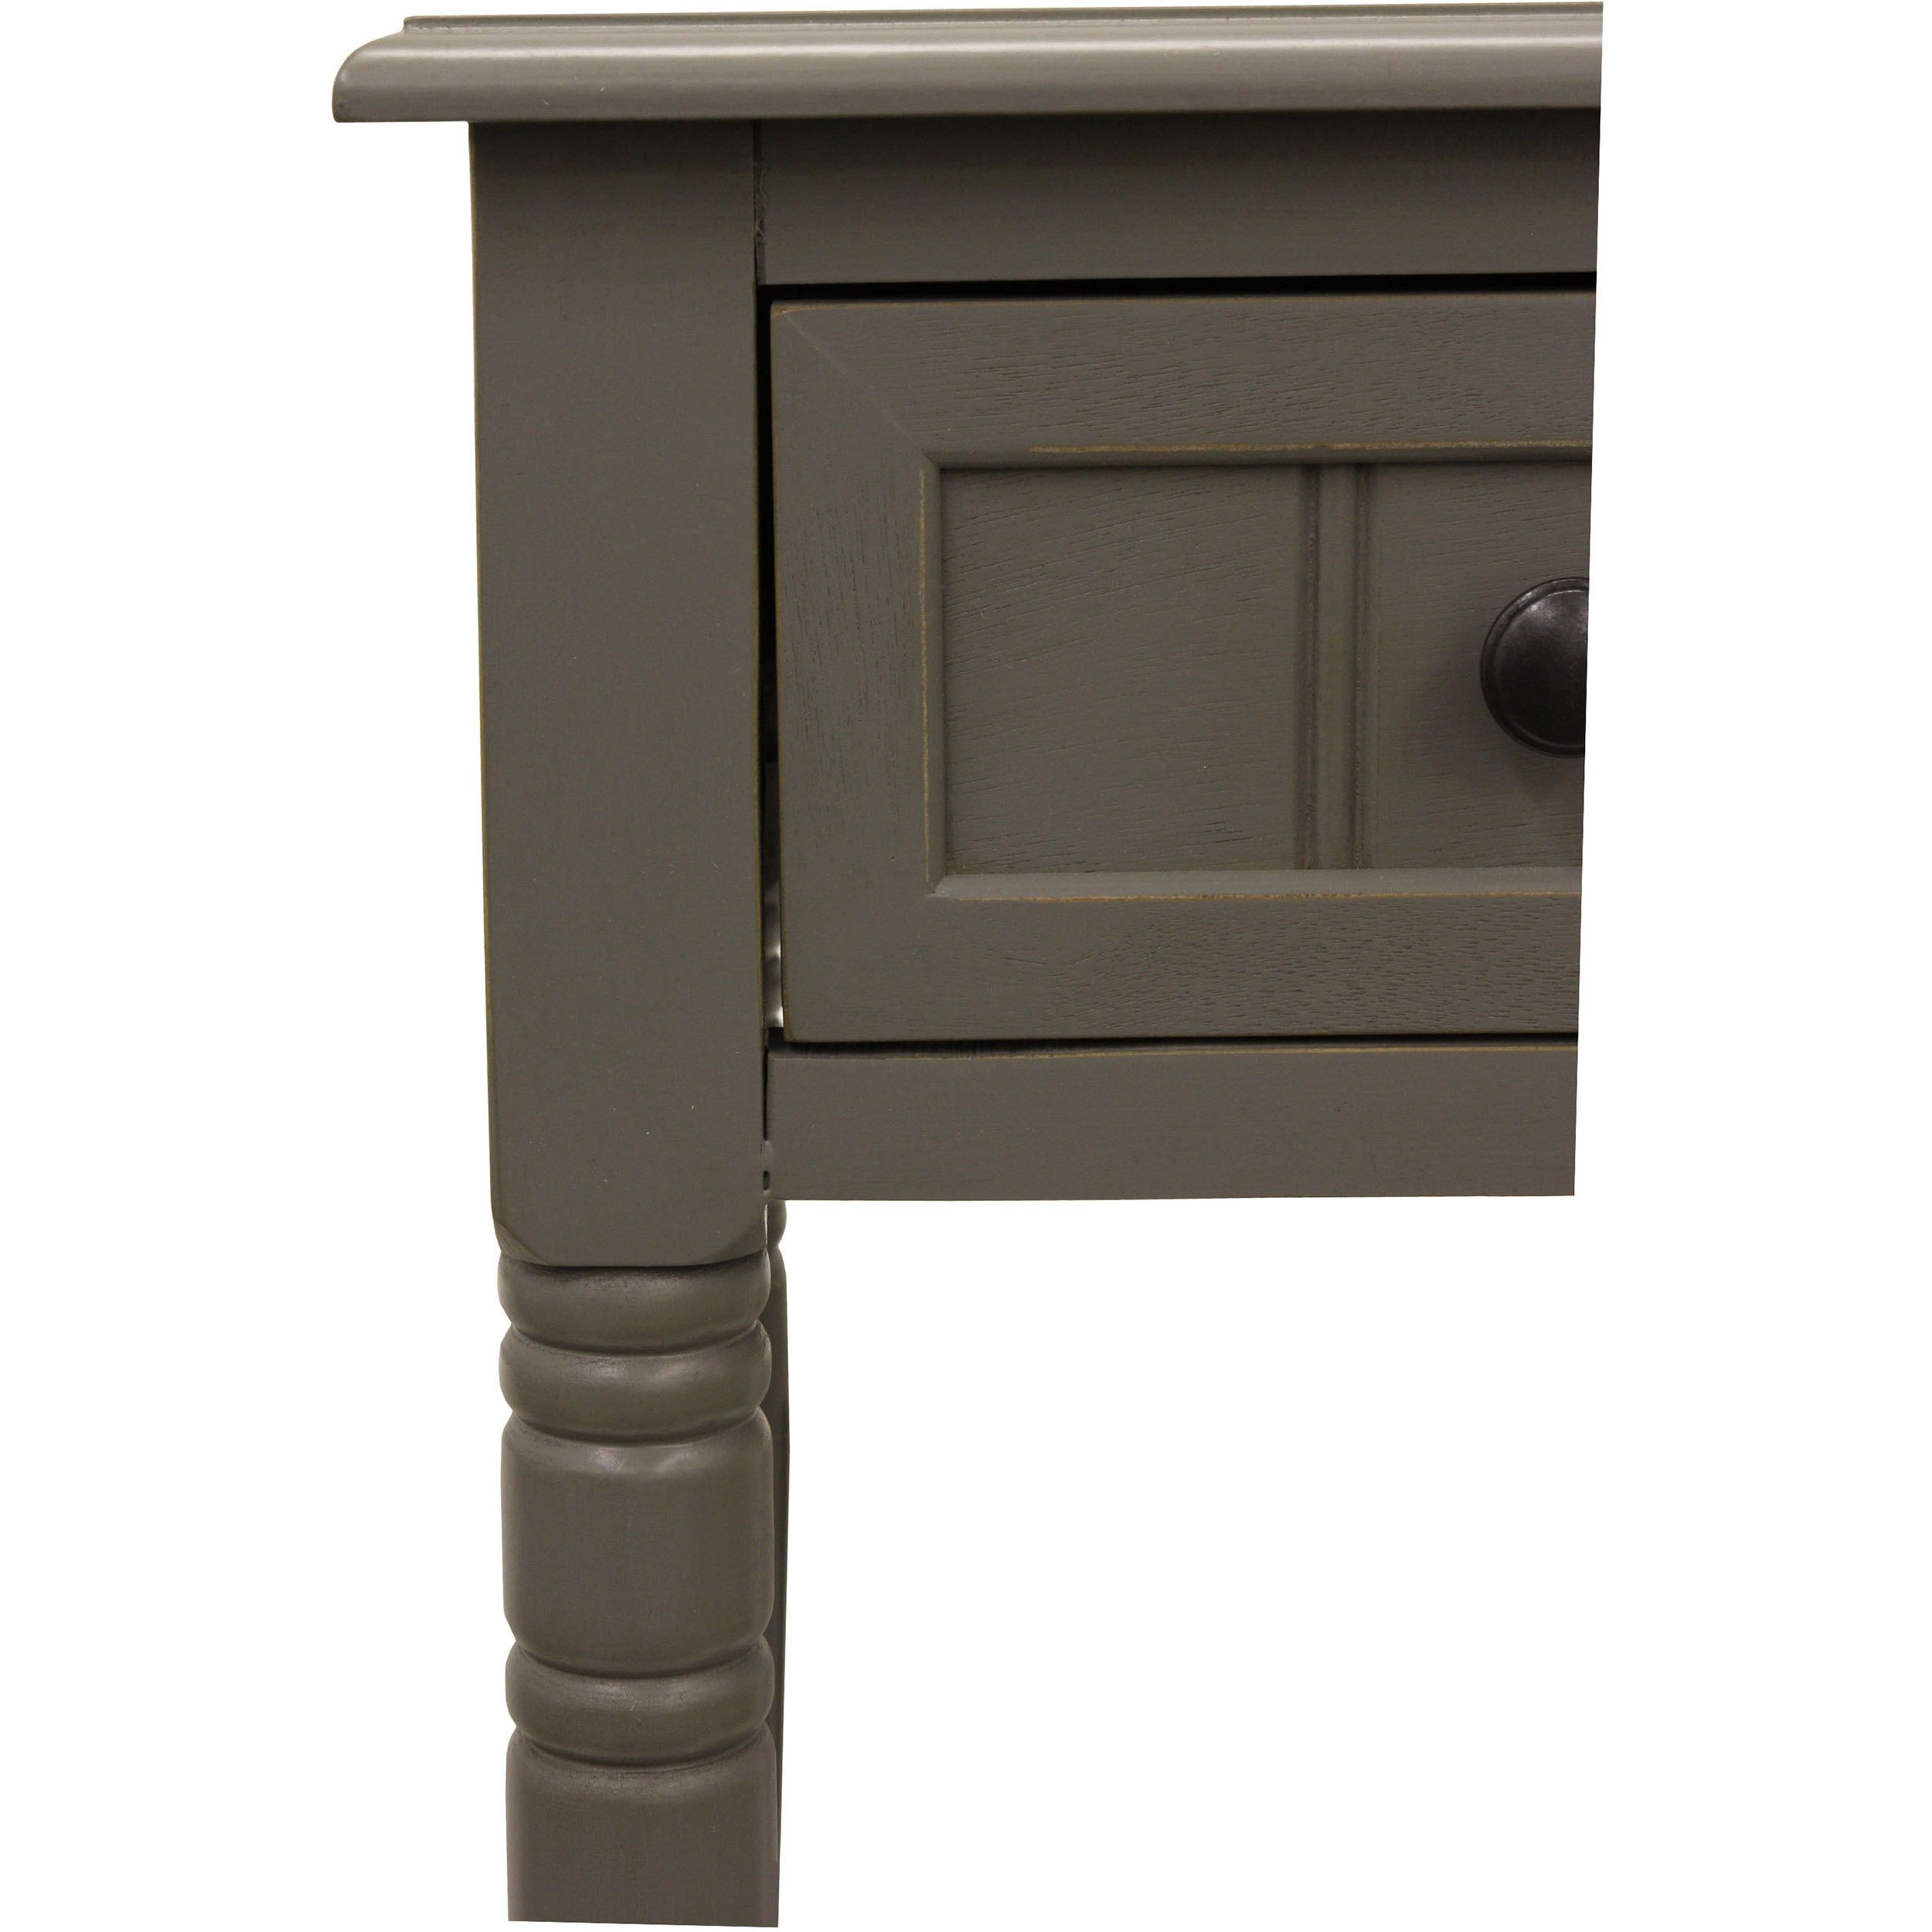 maison rouge provins one drawer square accent table simplify decoration pieces for drawing room oriental bedside lamps narrow console inches deep contemporary round end black